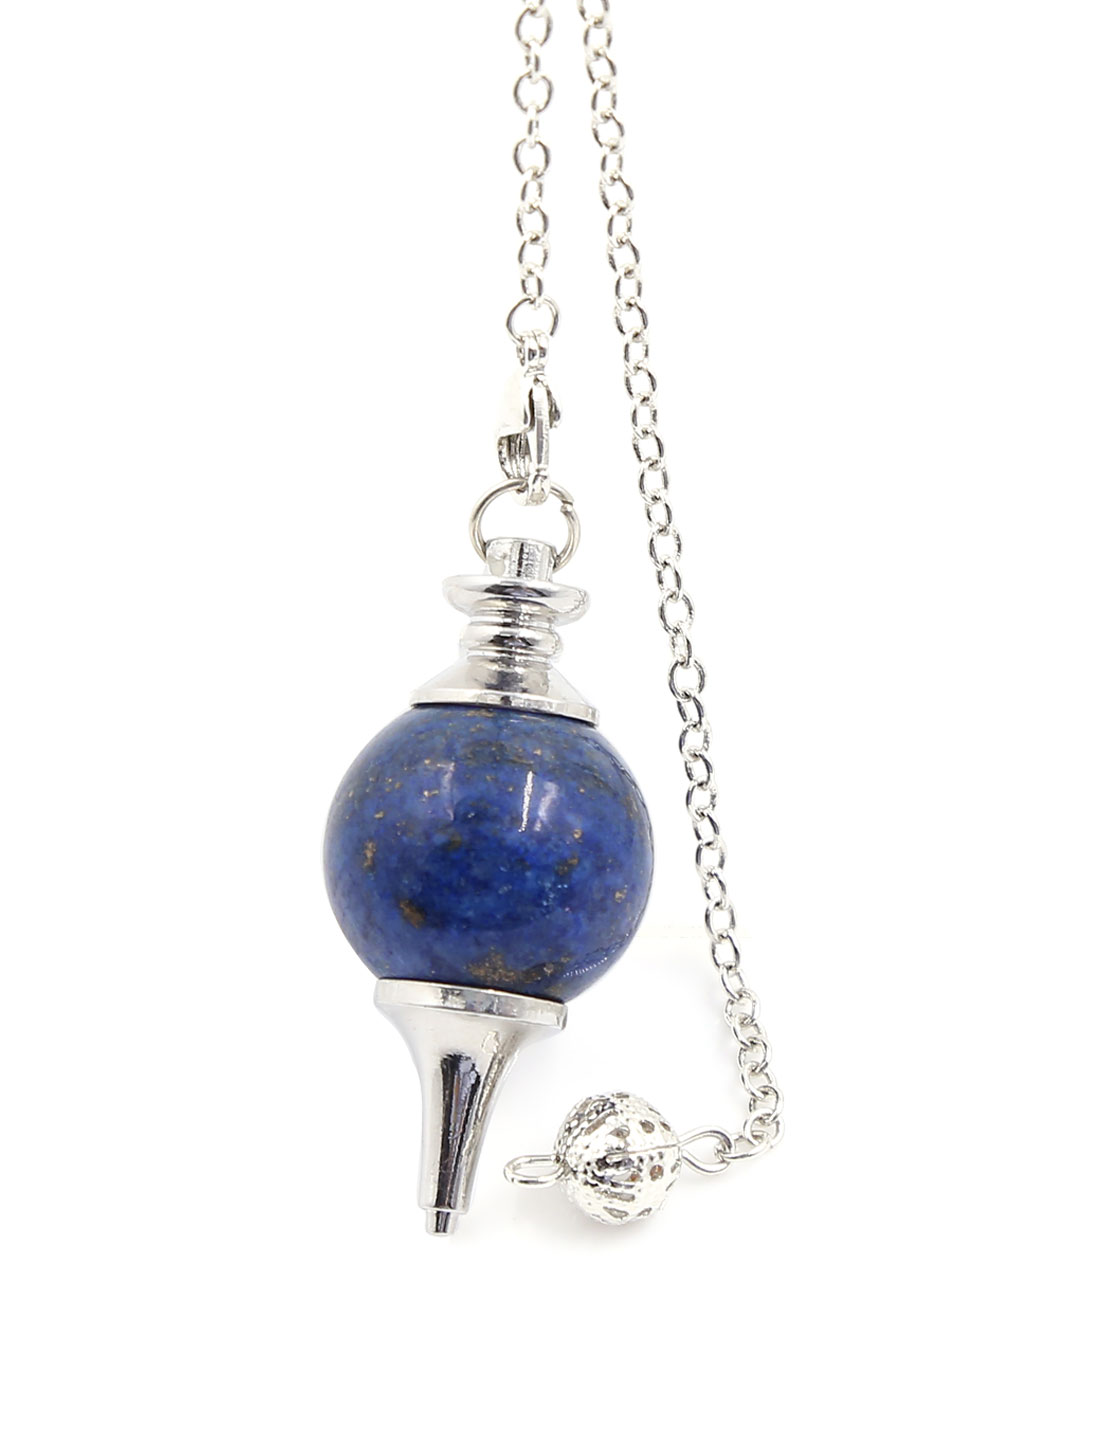 "Lapis Lazuli Gemstone Point Metaphysical Chakra Reiki Pendulum 6"" Chain"